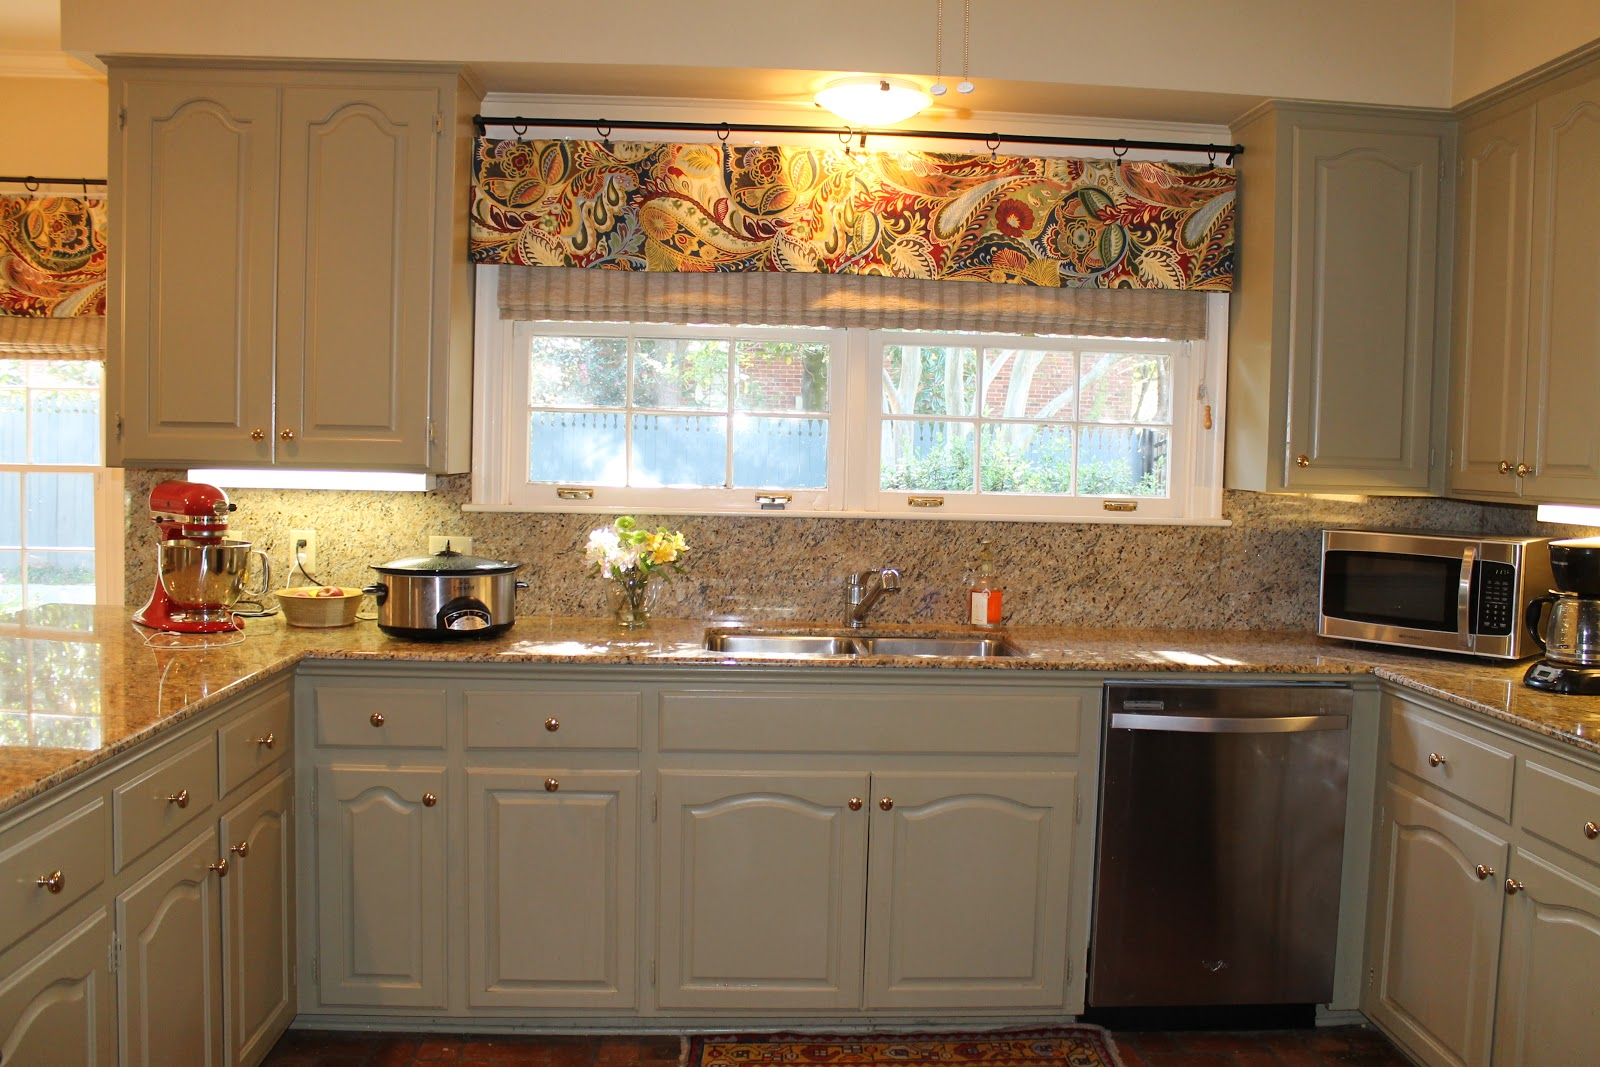 Kitchen Valances For Windows Cleaning Wood Cabinets Seamingly Smitten How To Sew A Valance Mini